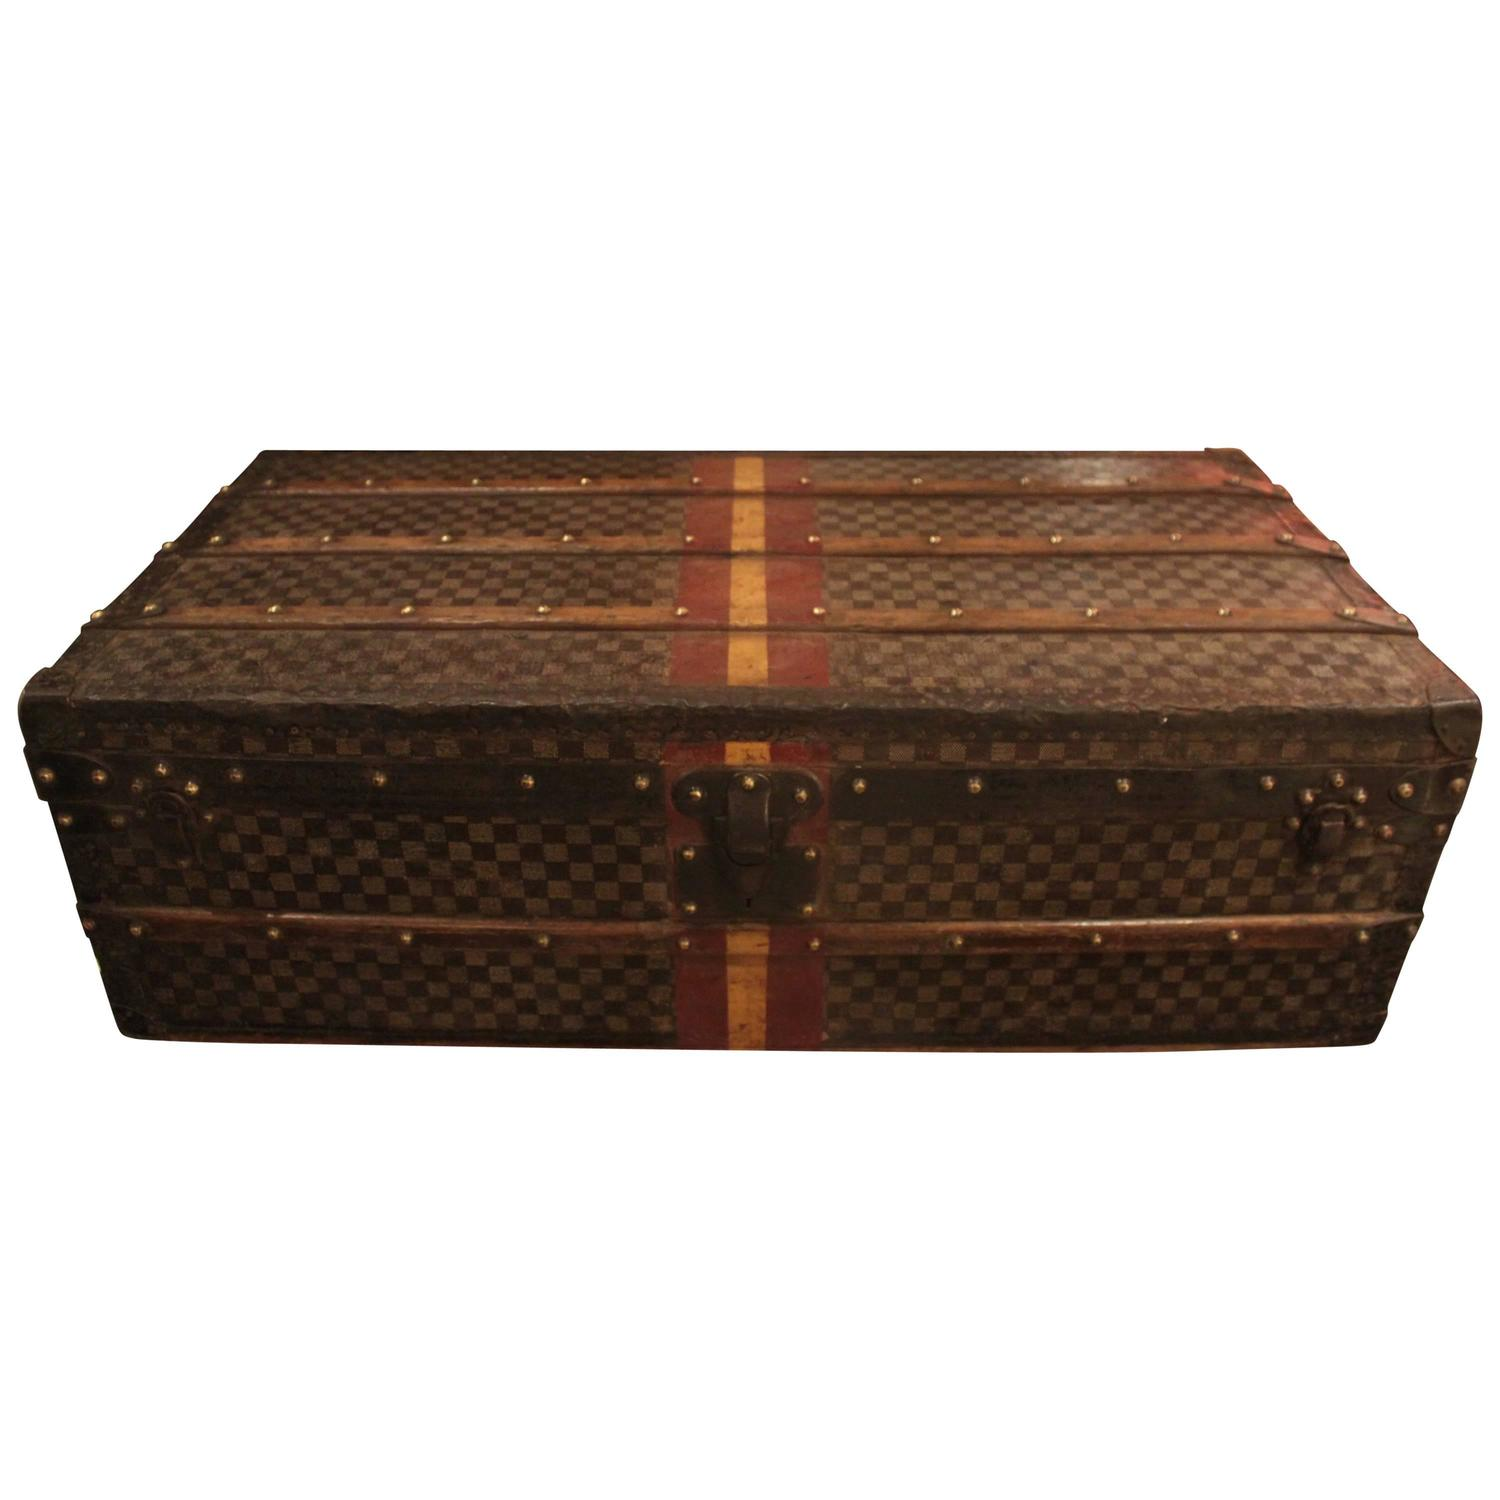 Lv Trunk Coffee Table: Vintage Louis Vuitton Damier Steamer Trunk For Sale At 1stdibs